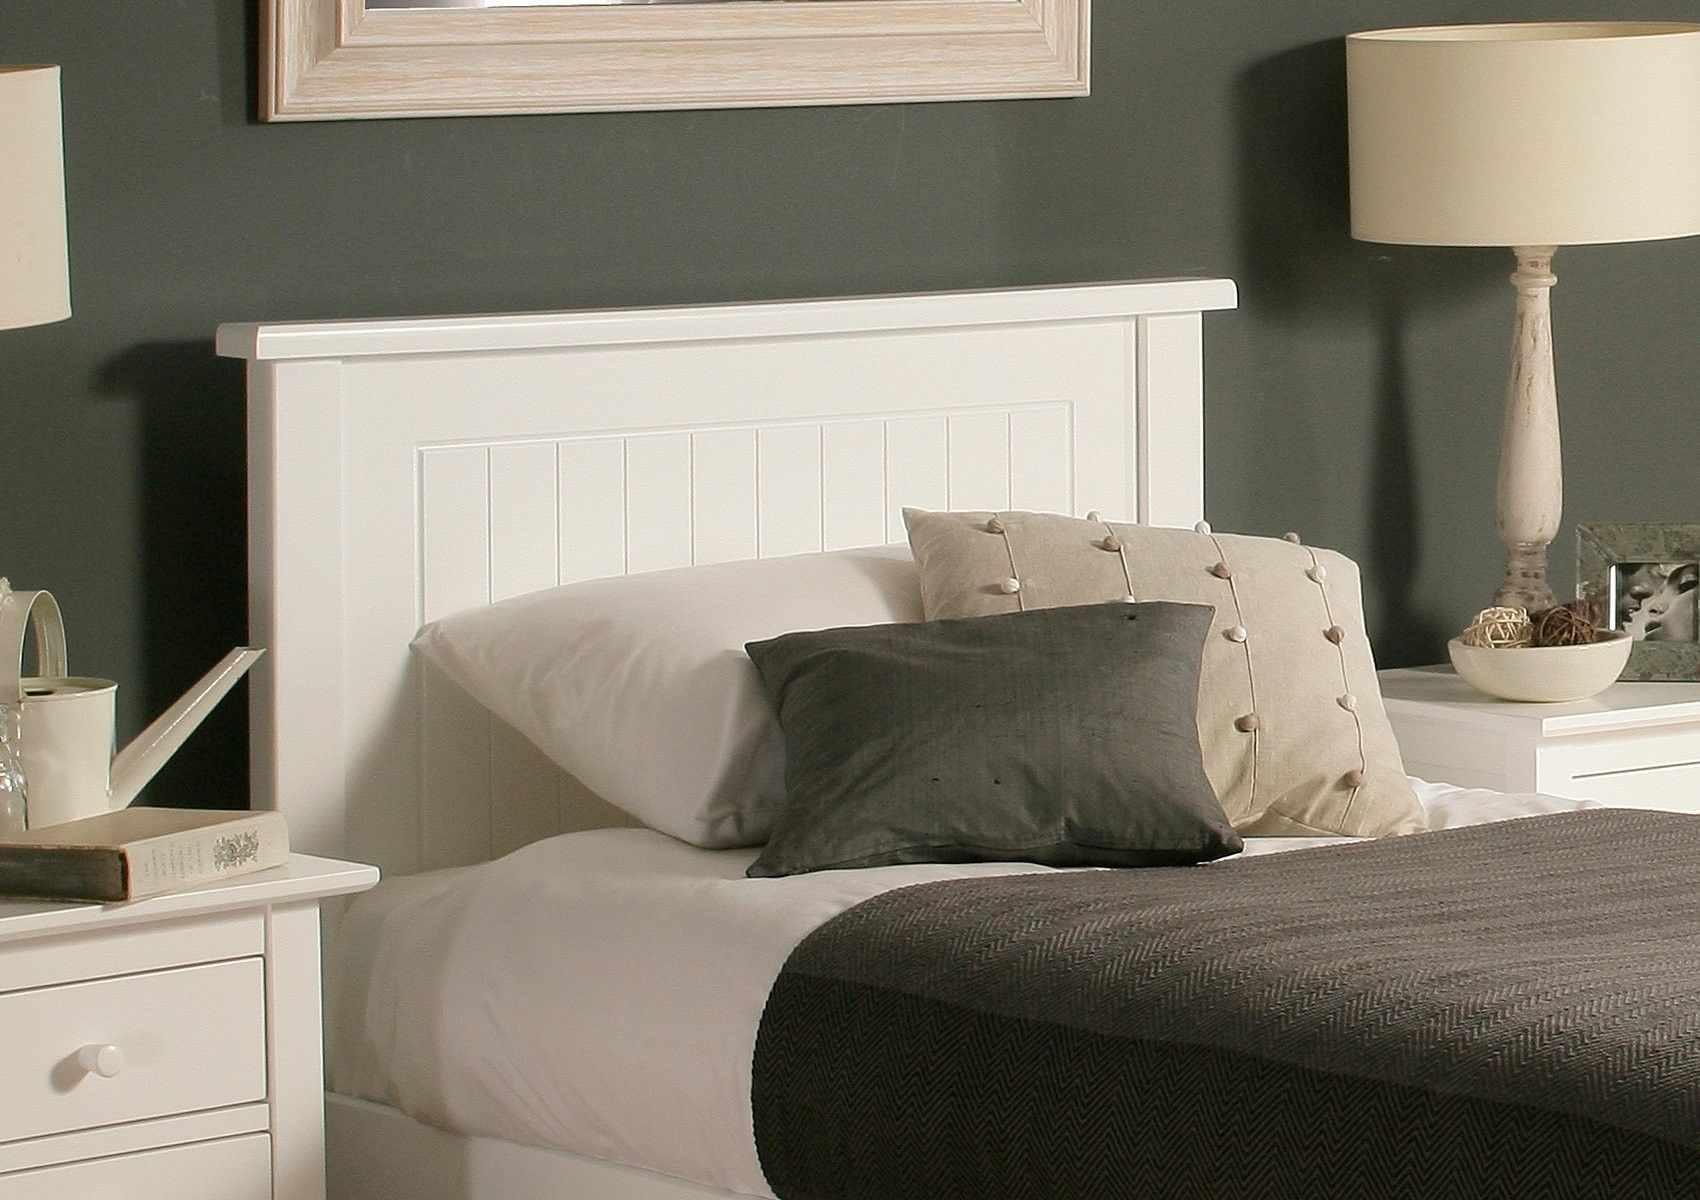 New England Solo Wooden Bed Frame Wooden bed frames